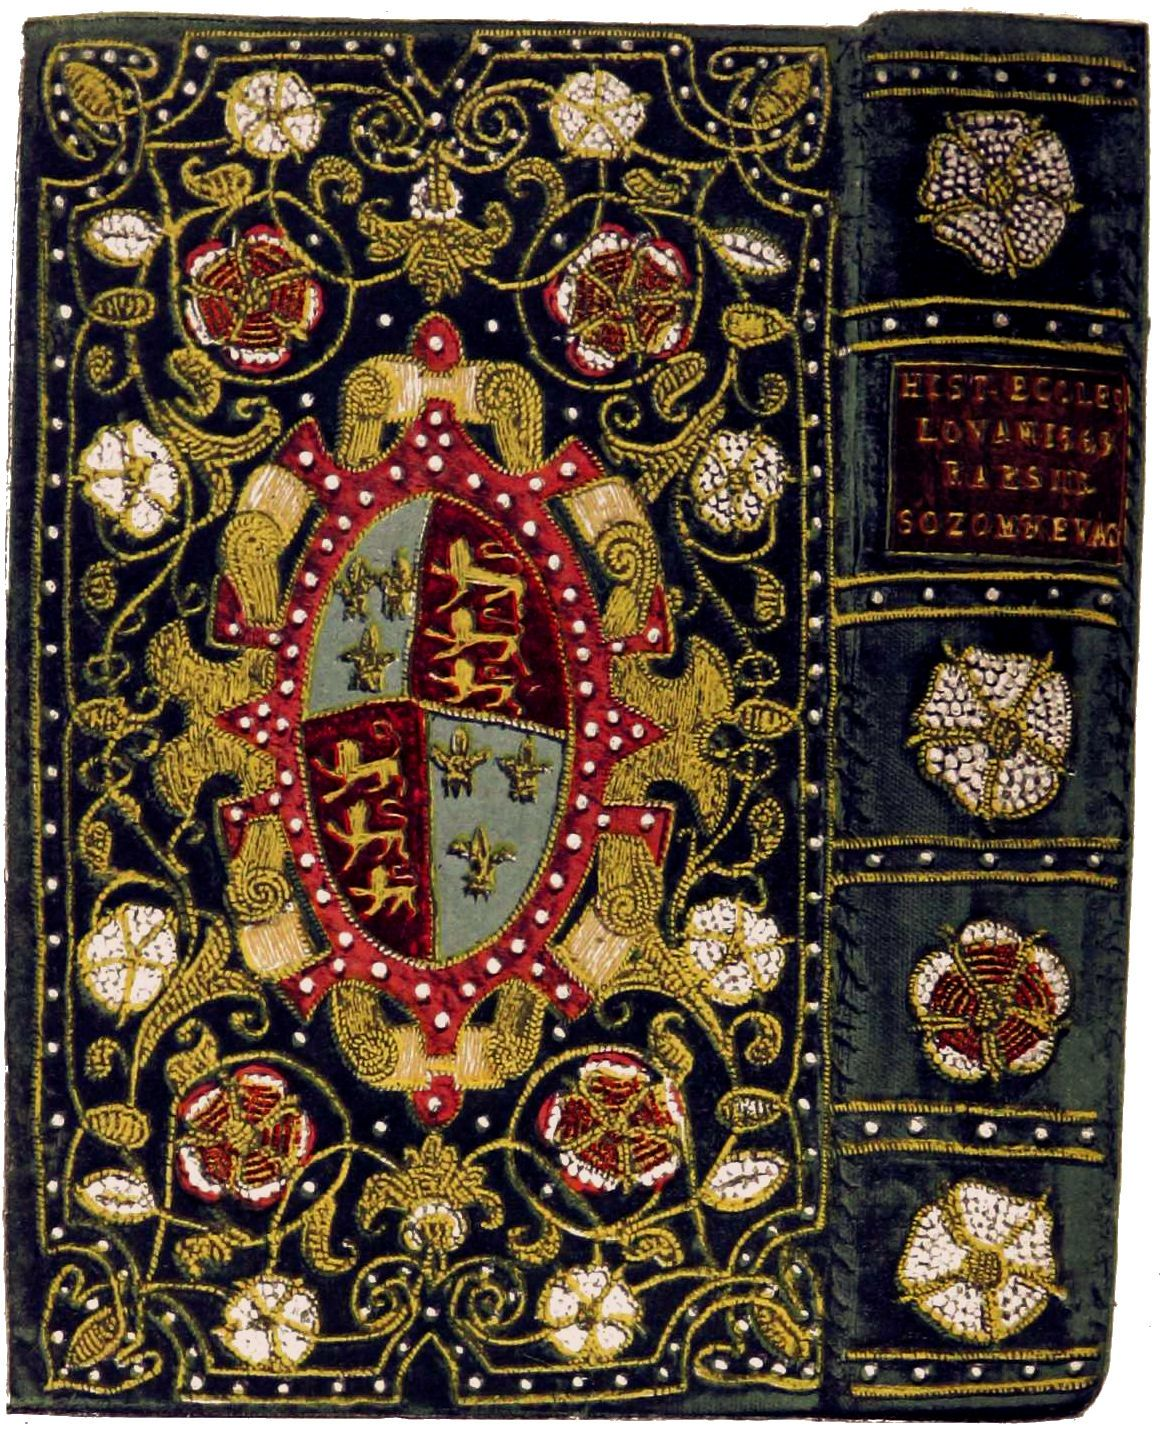 16th Century Embroidered Book Cover